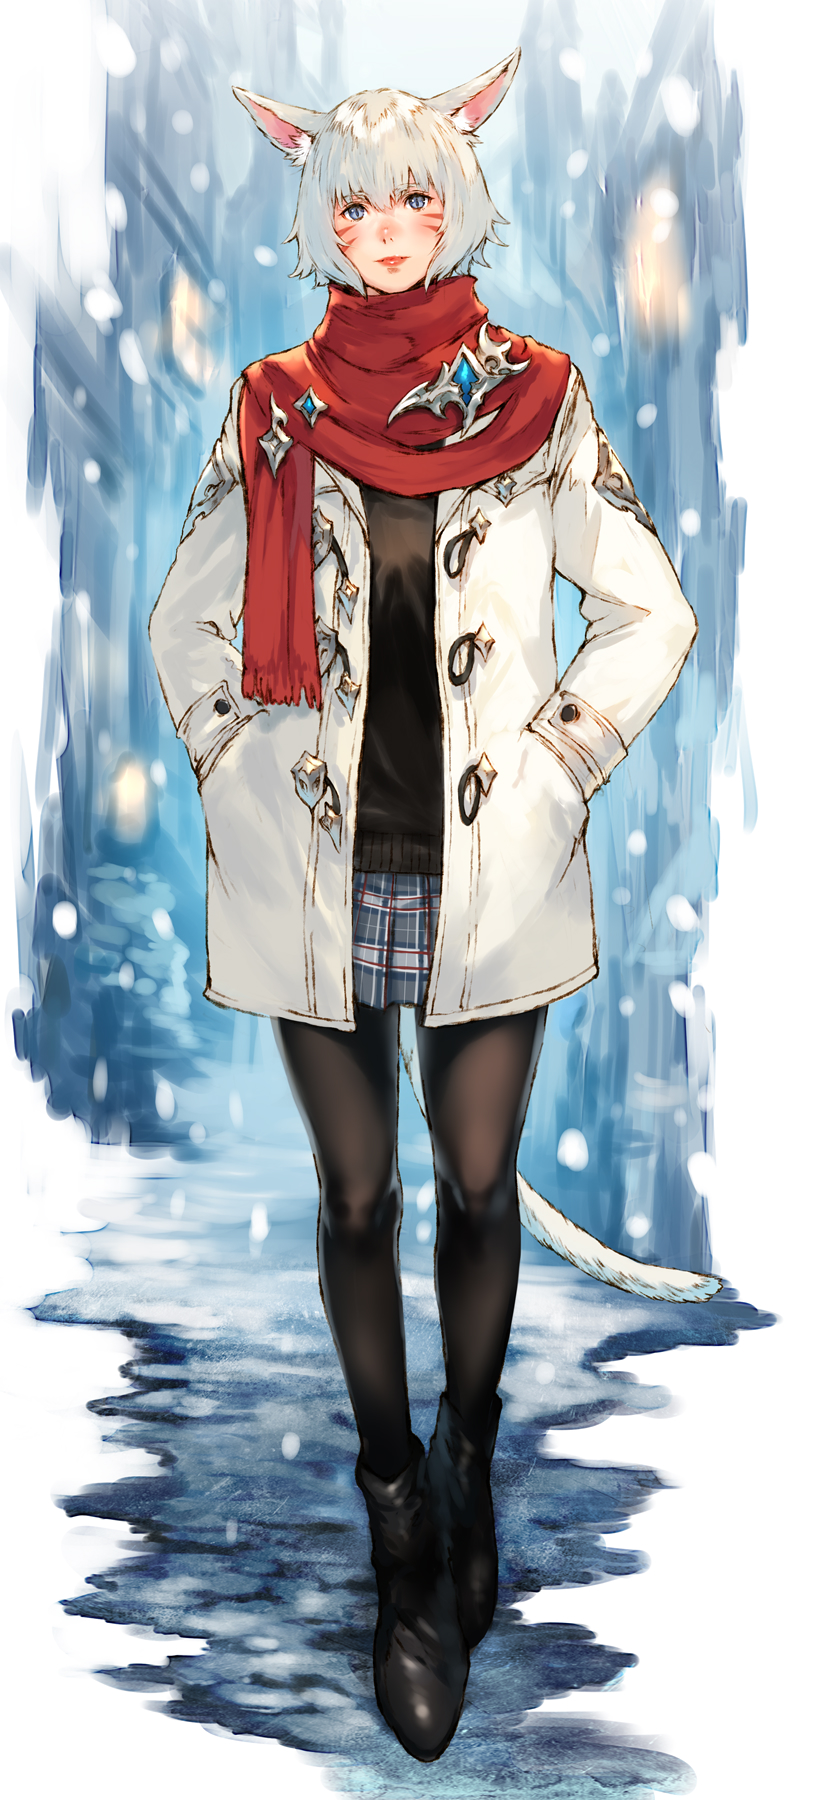 1girl alley animal_ears black_footwear black_legwear blue_eyes blush boots cat_ears cat_tail coat facial_mark final_fantasy final_fantasy_xiv full_body hands_in_pockets highres lips looking_at_viewer makimura_shunsuke miqo'te outdoors pantyhose plaid plaid_skirt pleated_skirt scarf short_hair silver_hair skirt slit_pupils smile snow solo tail y'shtola